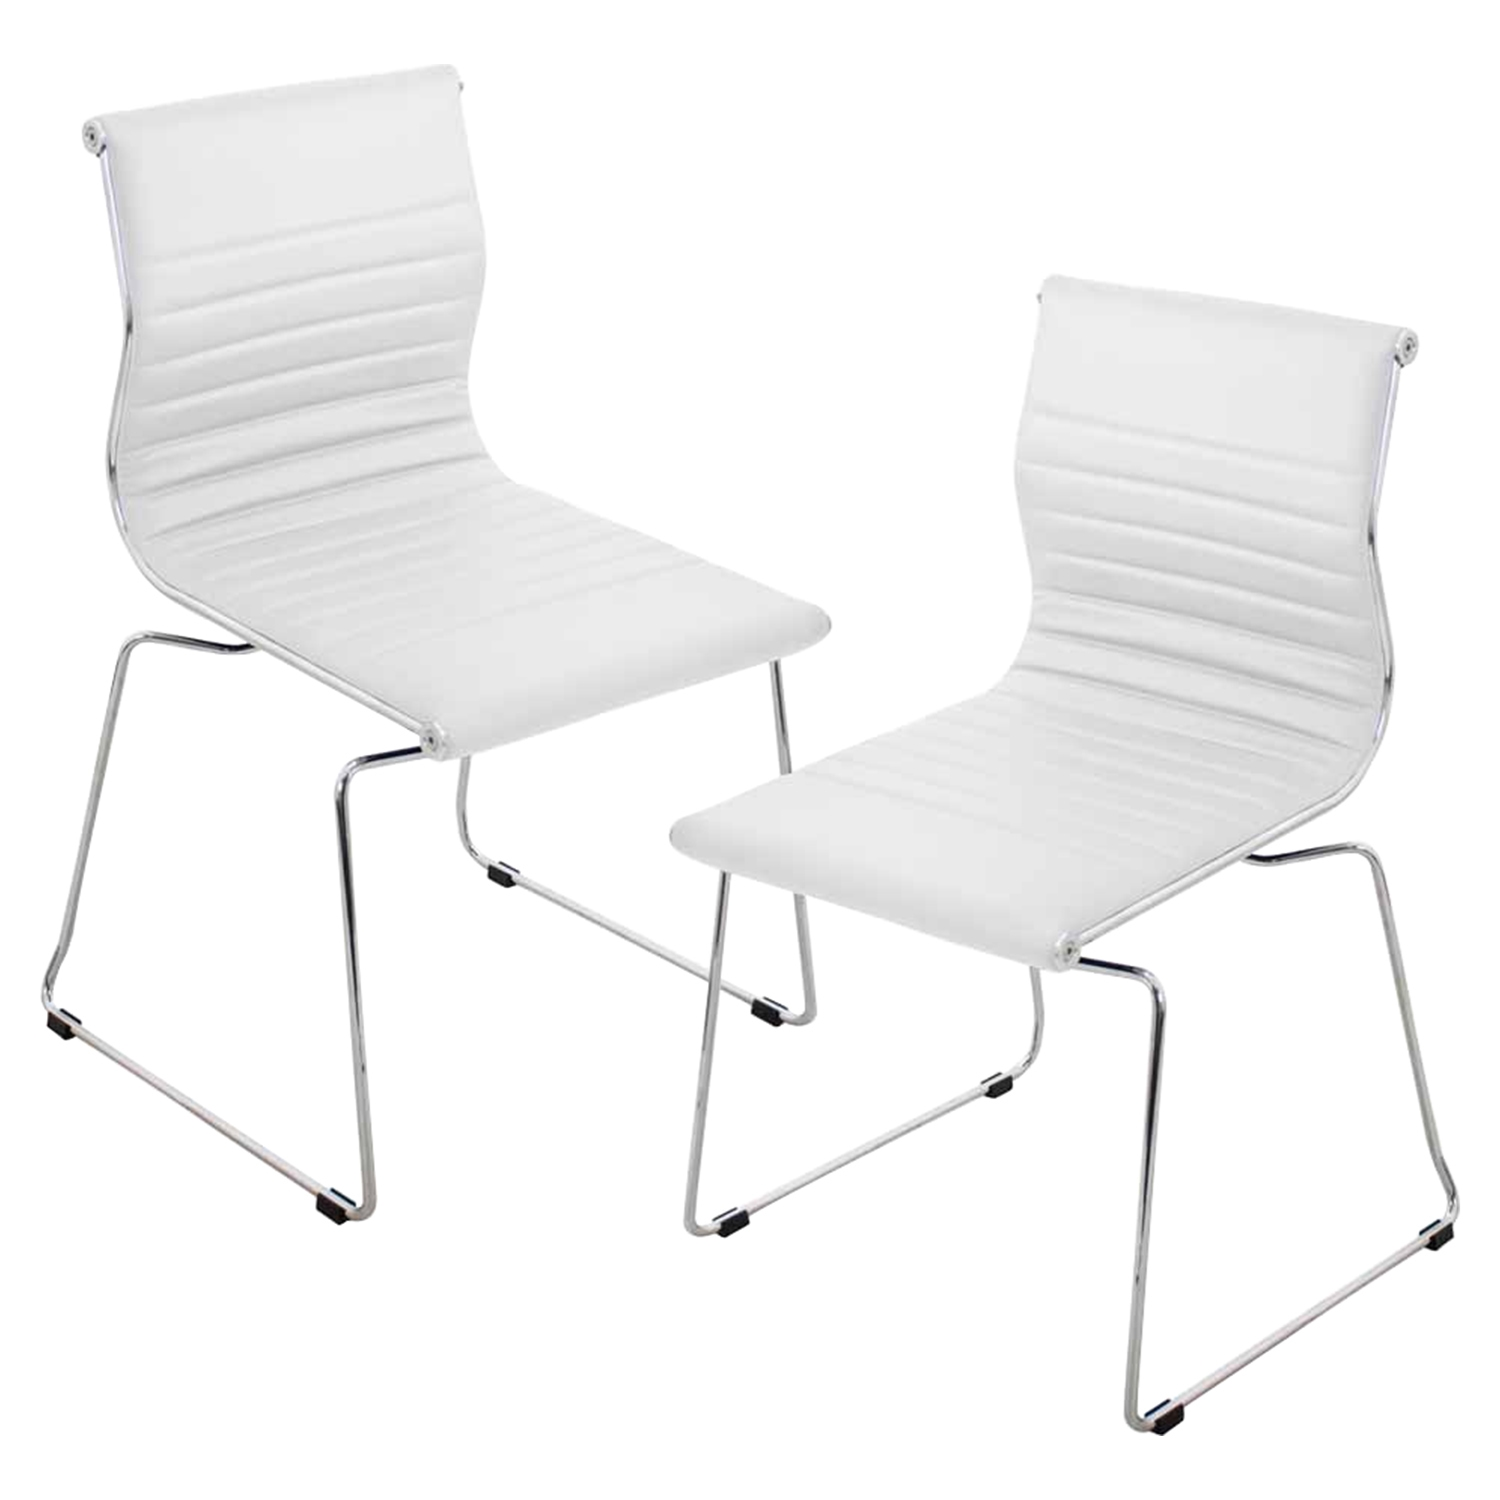 Master Stackable Dining Chair - White (Set of 2)